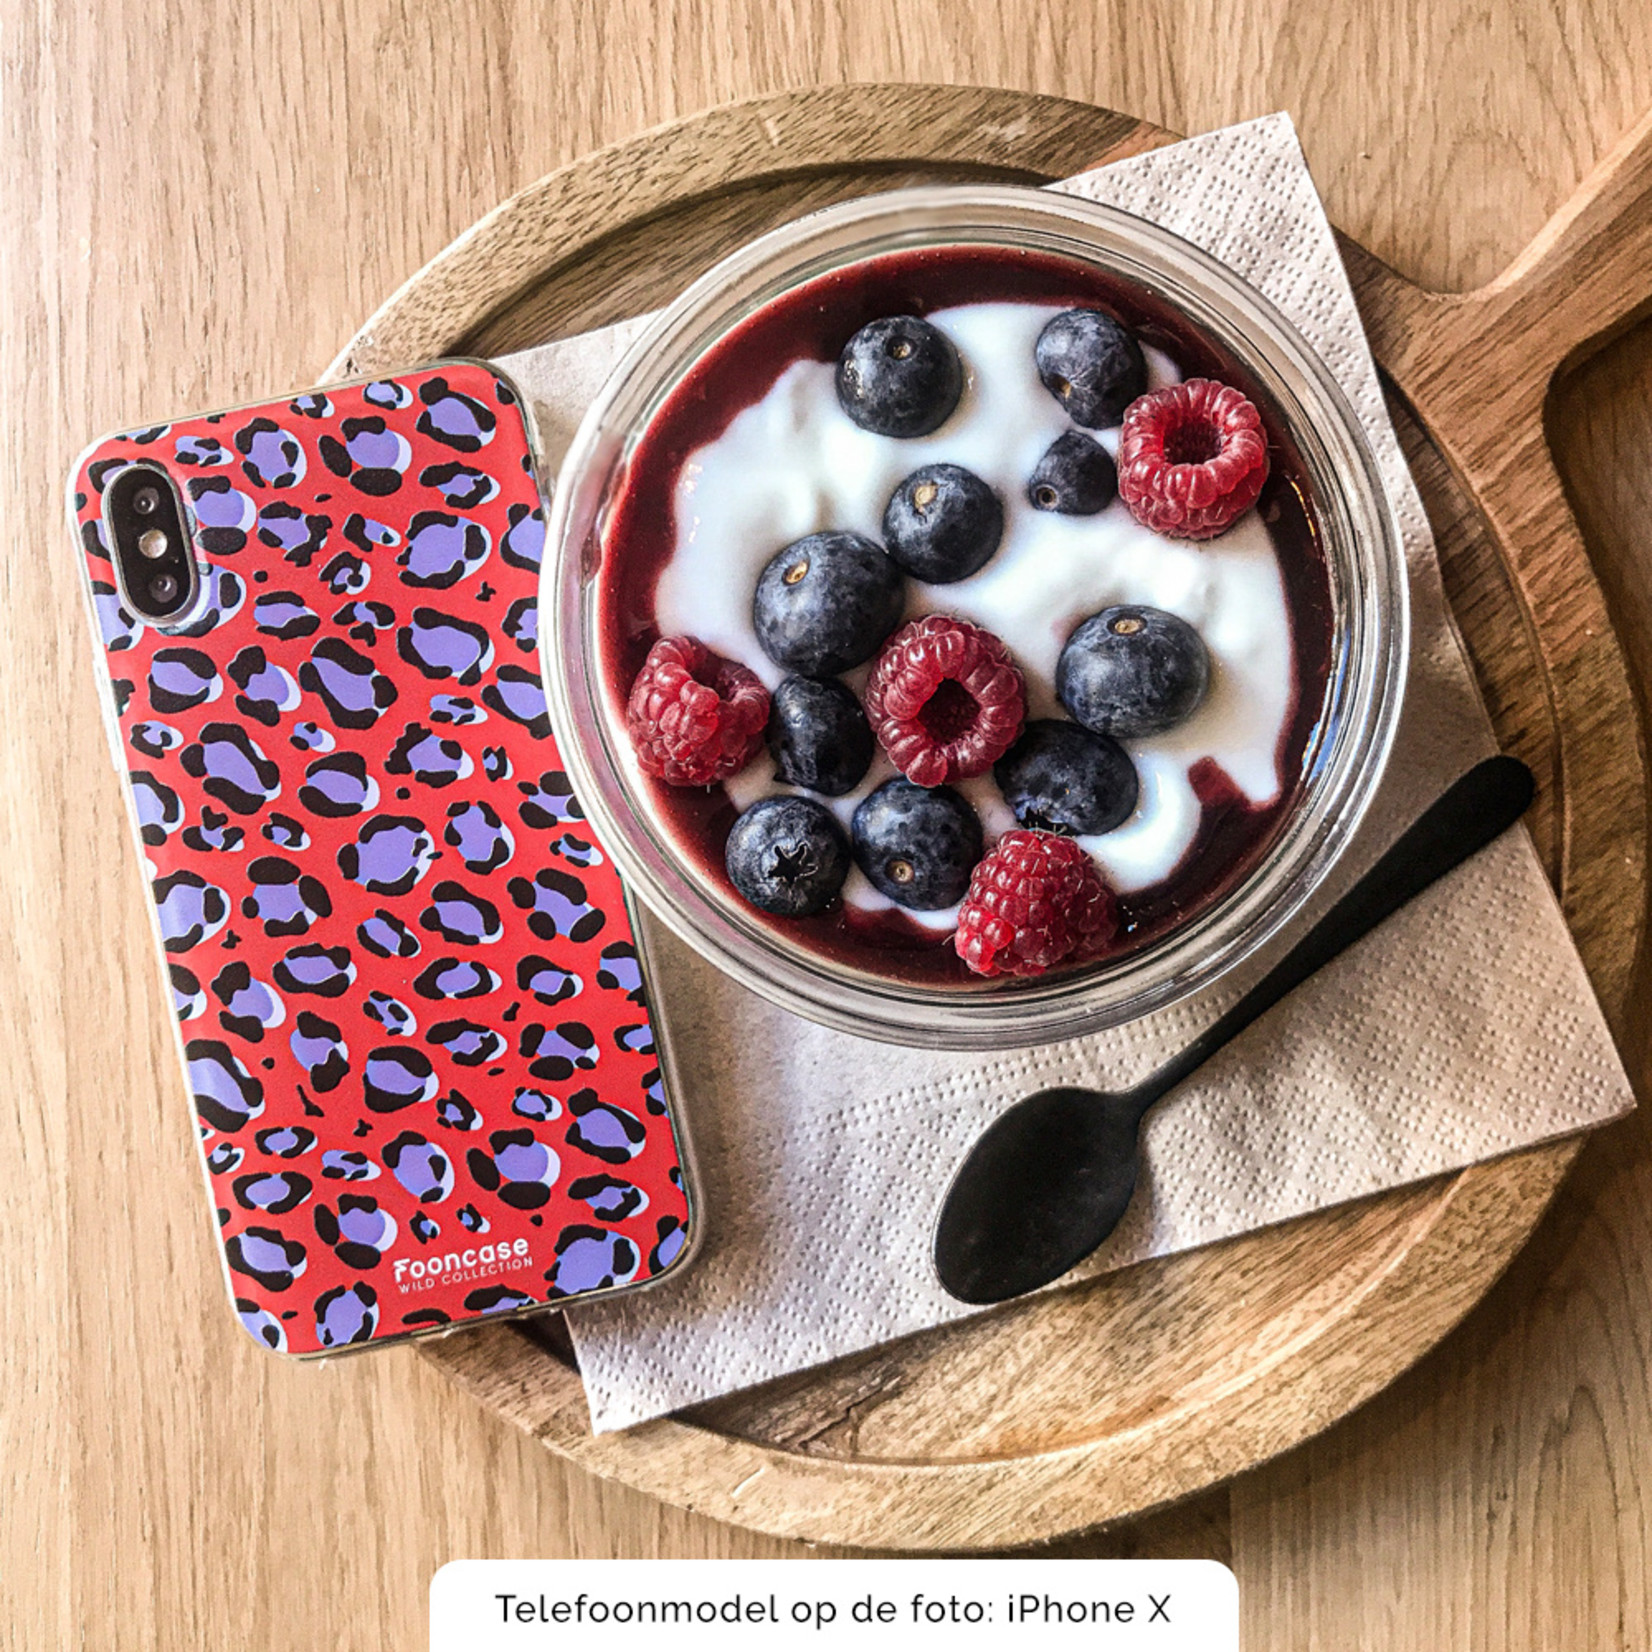 FOONCASE Samsung Galaxy A7 2018 hoesje TPU Soft Case - Back Cover - WILD COLLECTION / Luipaard / Leopard print / Rood